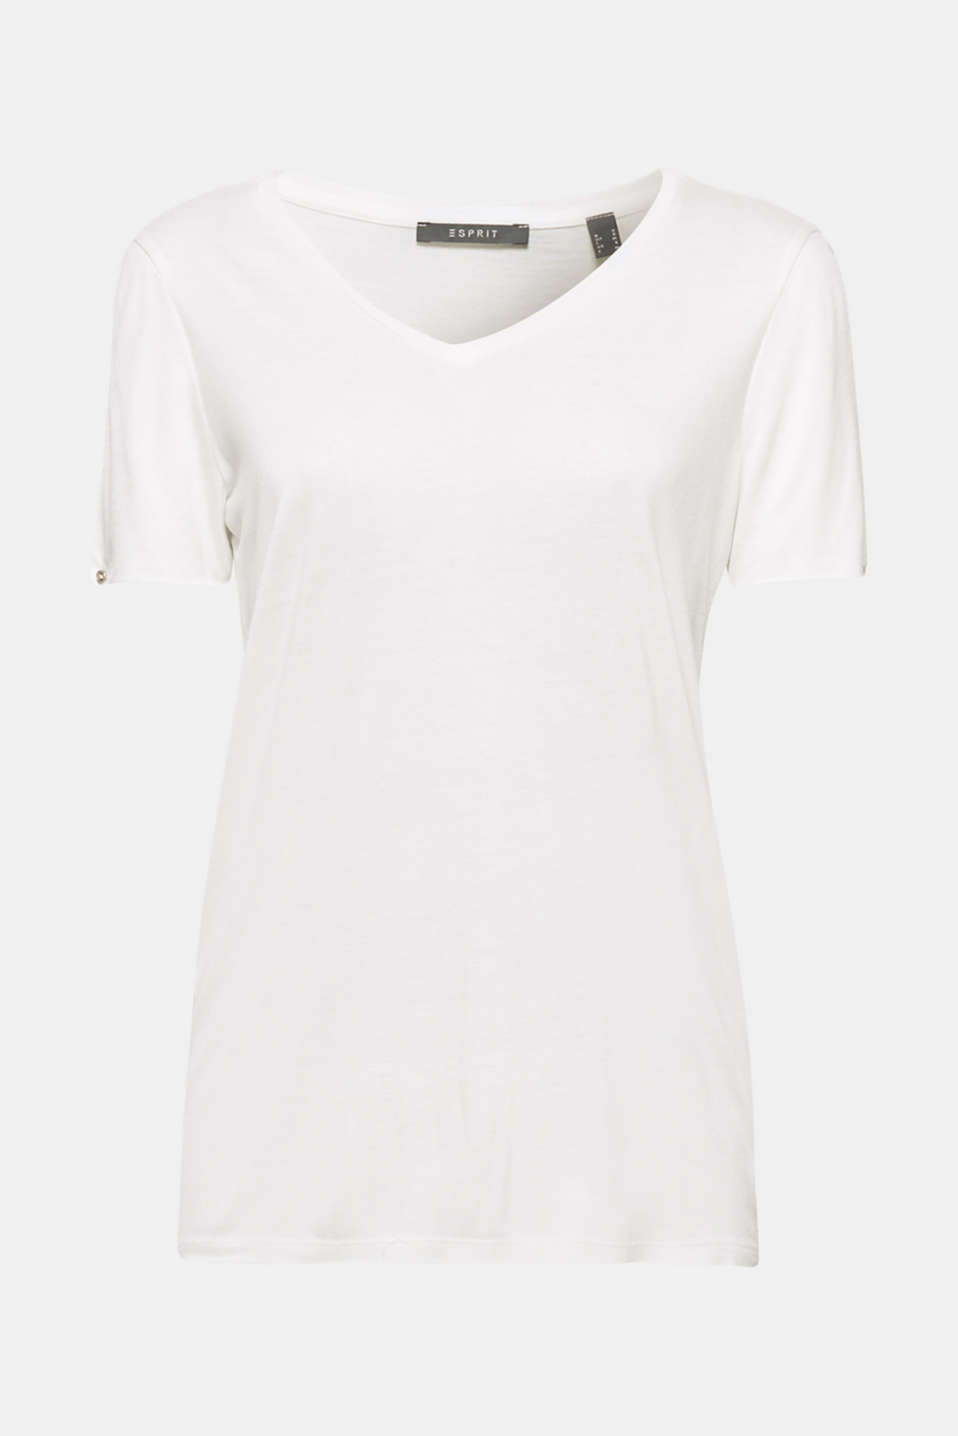 The short sleeves of this flowing T-shirt with a generous V-neckline feature beautiful slits!